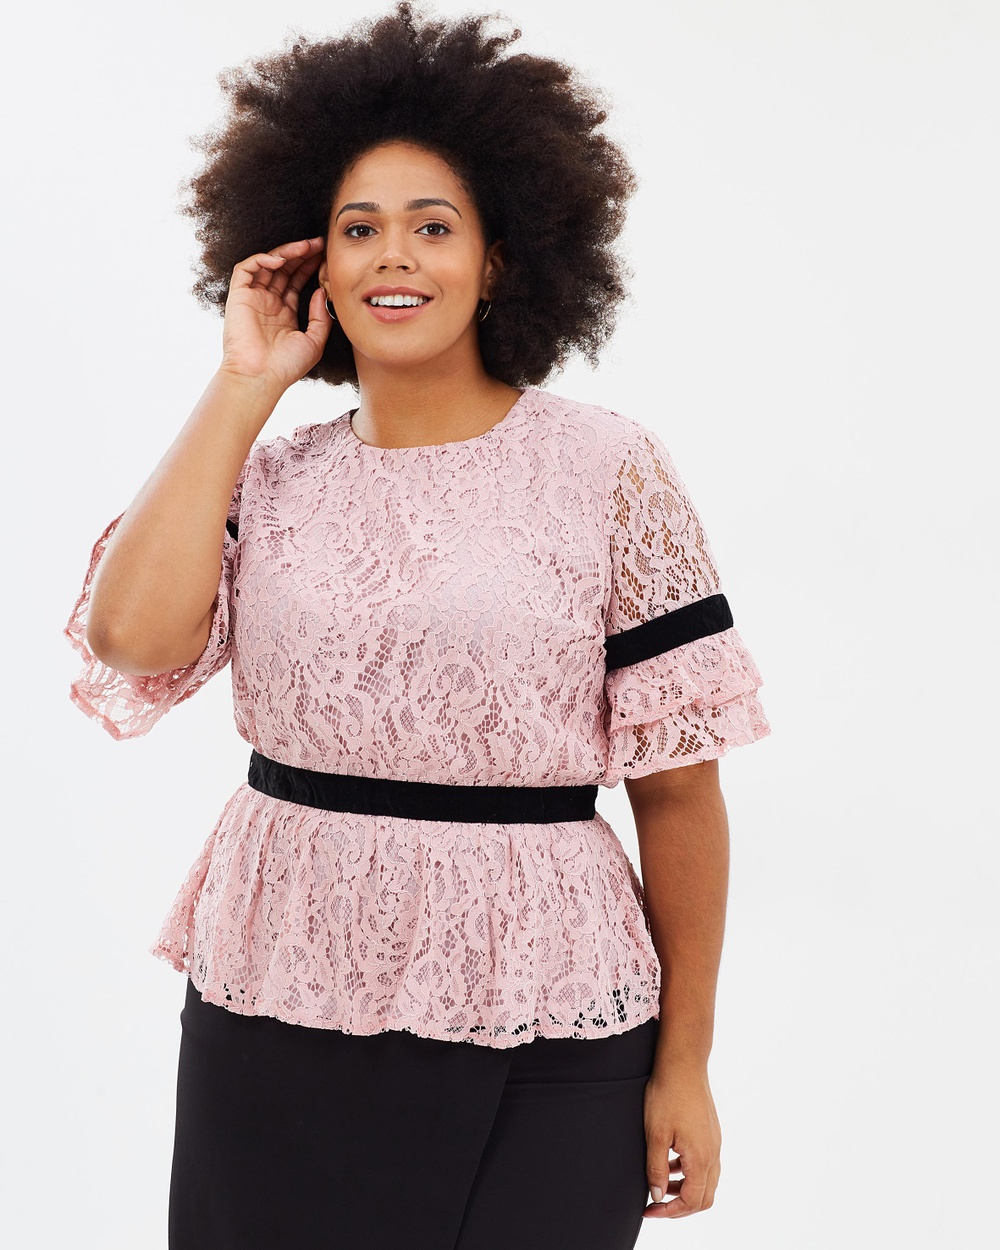 Atmos & Here Curvy ICONIC EXCLUSIVE Yvette Lace Contrast Top Tops Pink Lace ICONIC EXCLUSIVE Yvette Lace Contrast Top